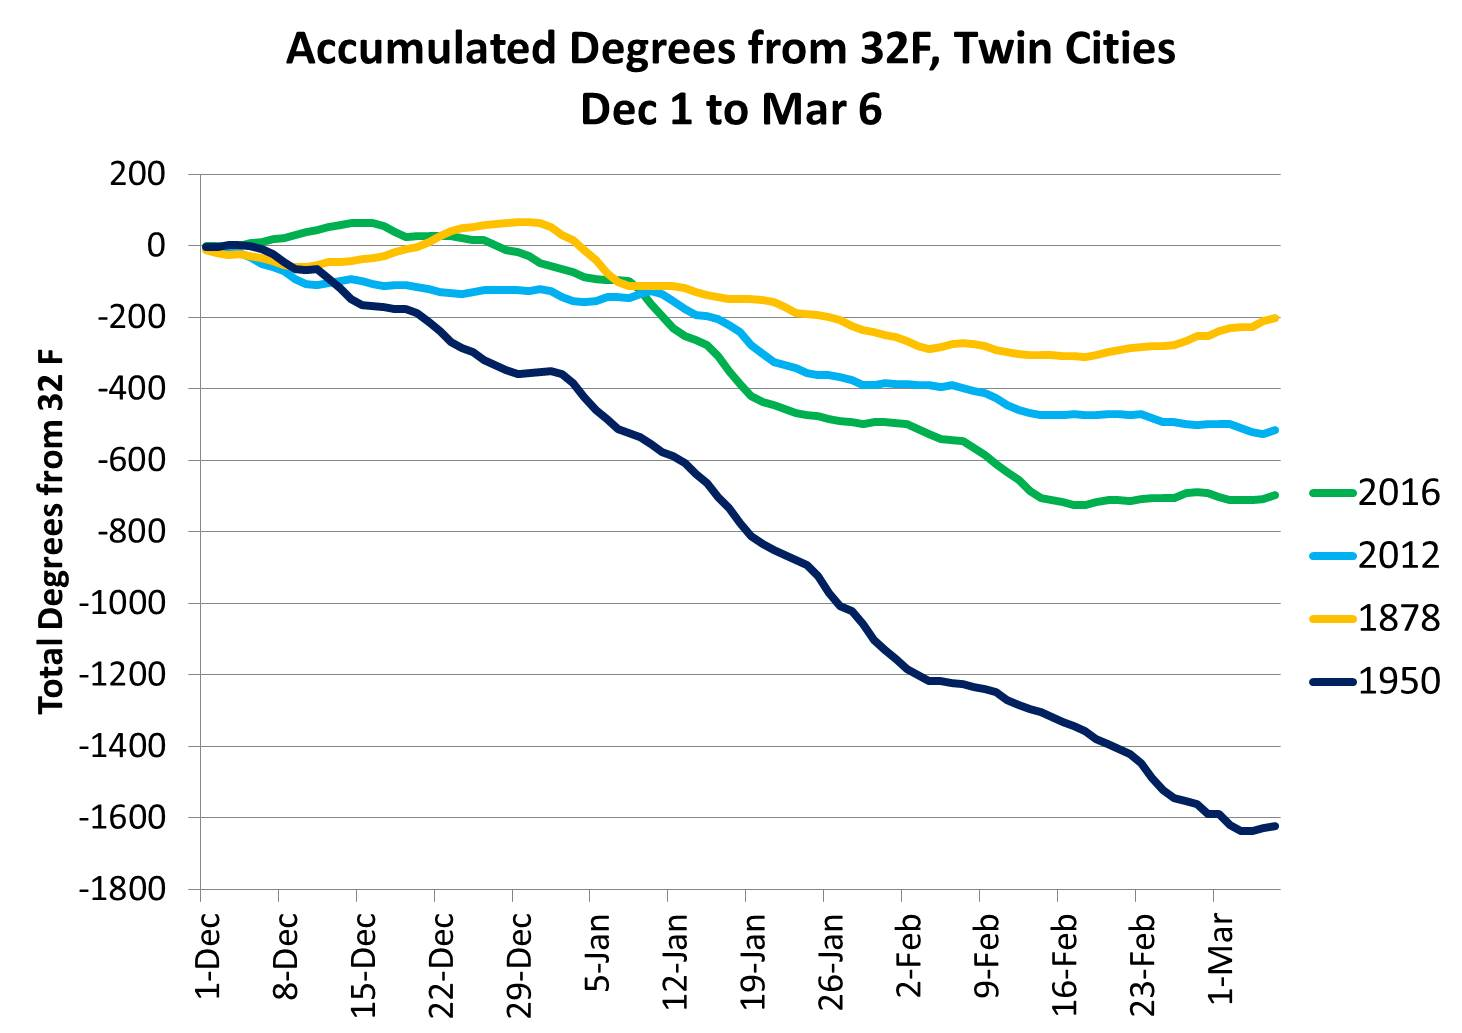 Accumulated Degrees from 32F Twin Cities: Dec 1, 2015 to March 2, 2016